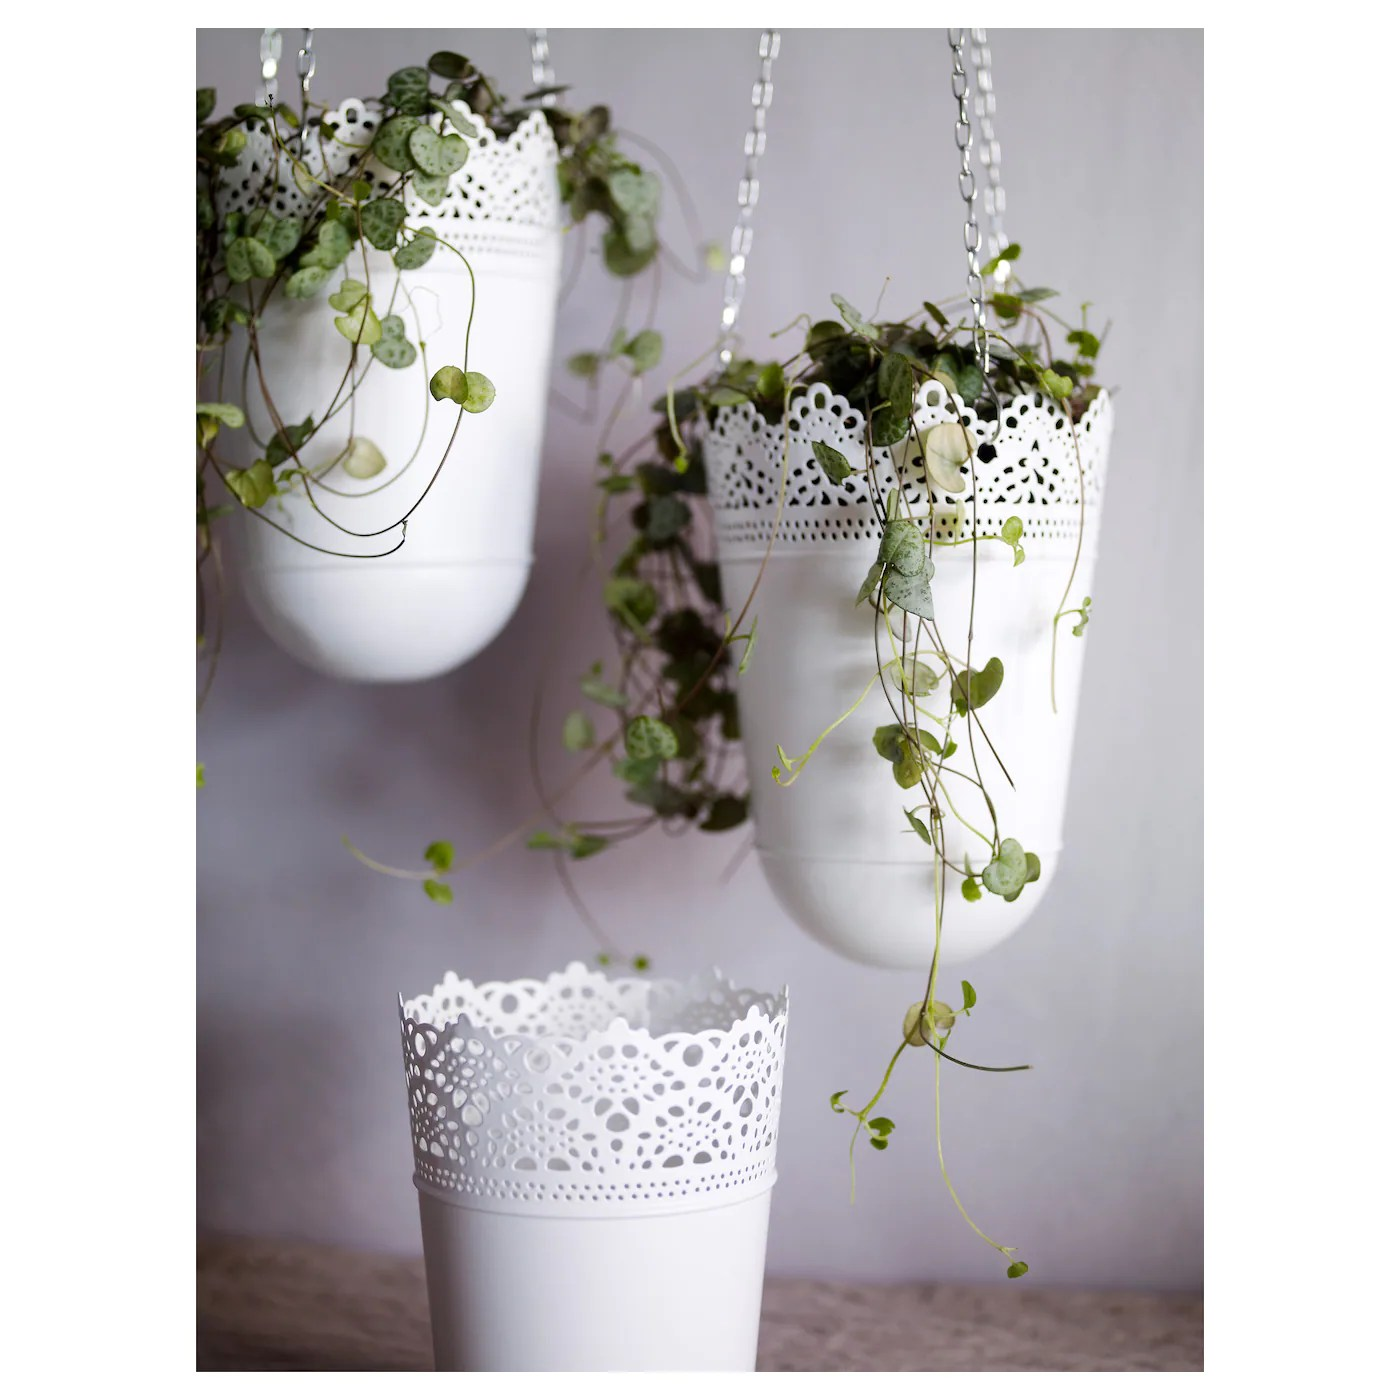 Hangplant Ikea Skurar Plant Pot In Outdoor Off White 12 Cm Ikea